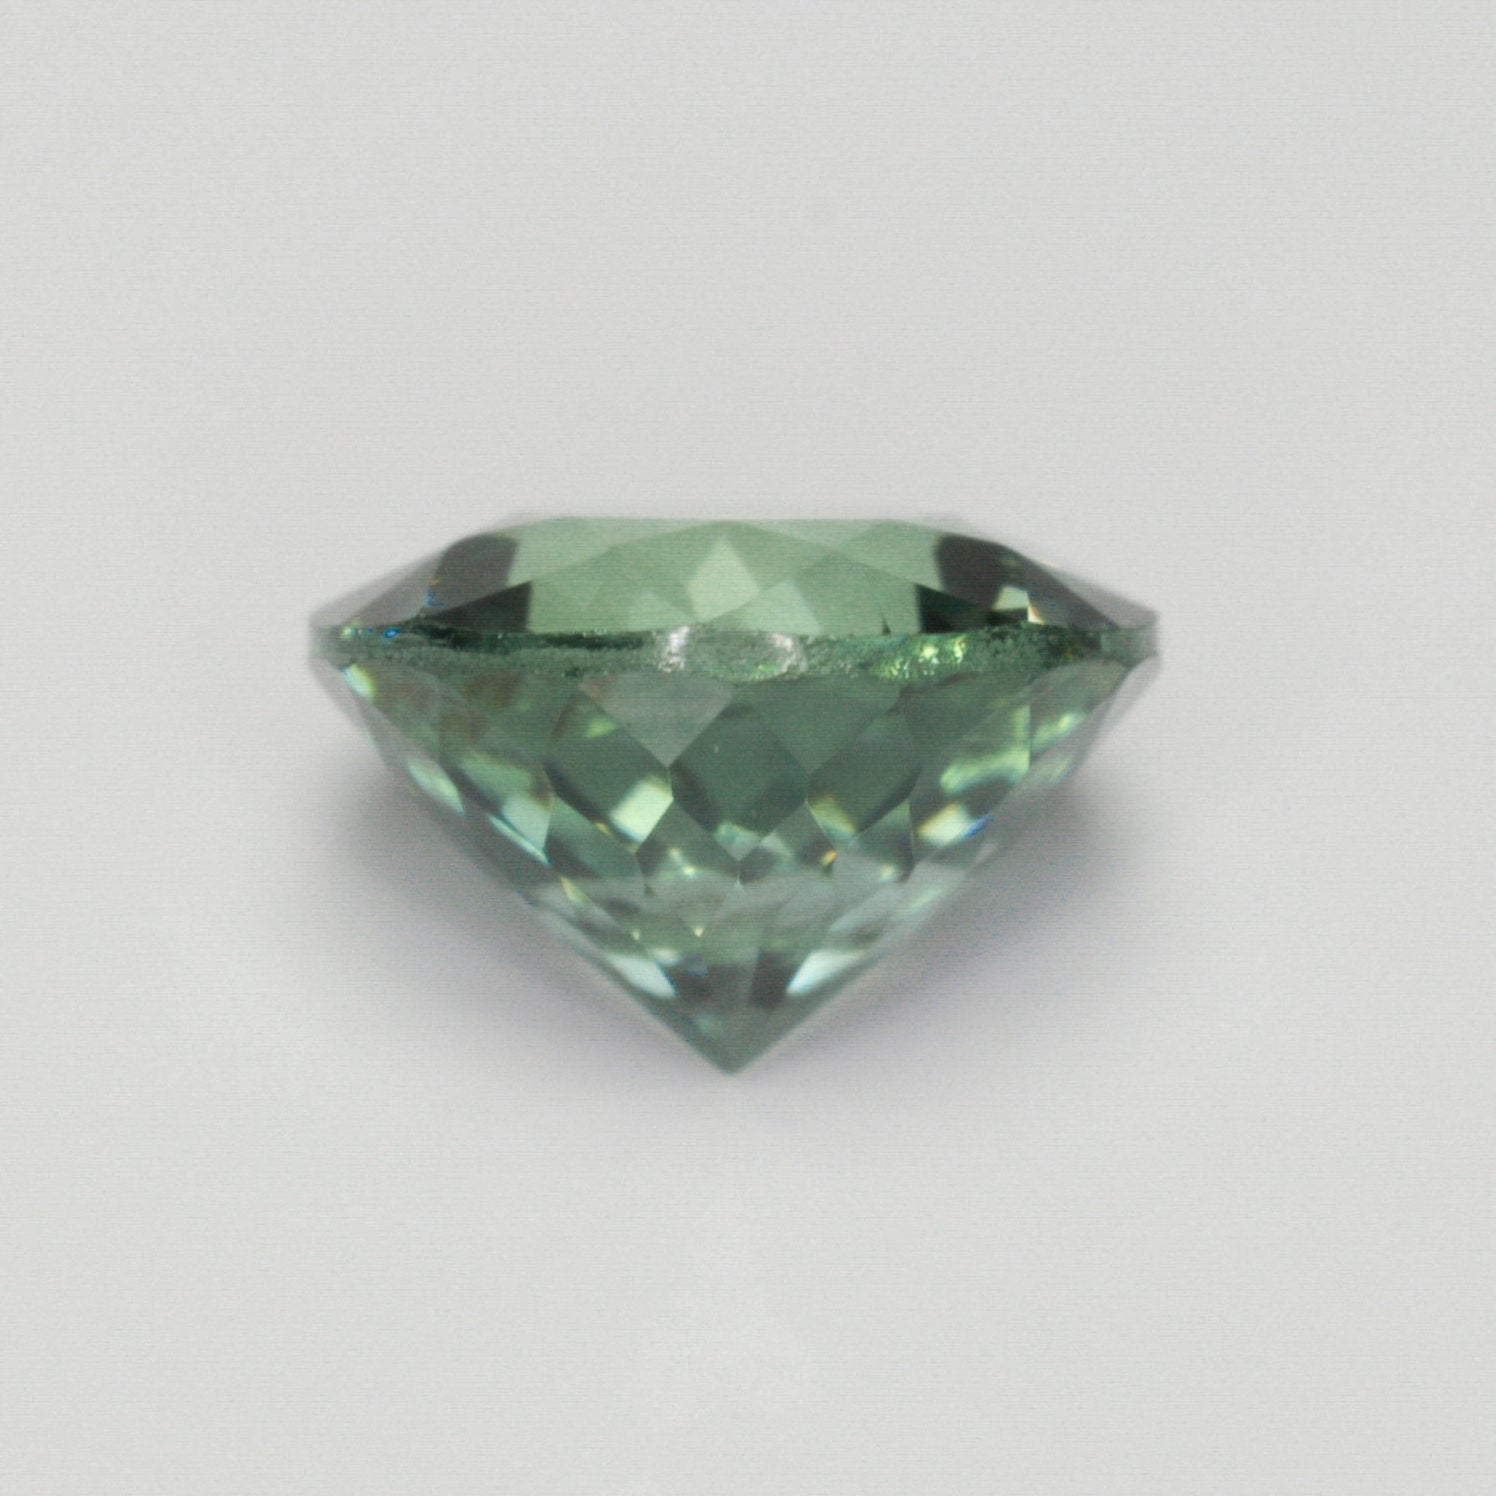 .61 carat round green teal sapphire - custom work - inventory code LGRS61 - Midwinter Co. Alternative Bridal Rings and Modern Fine Jewelry